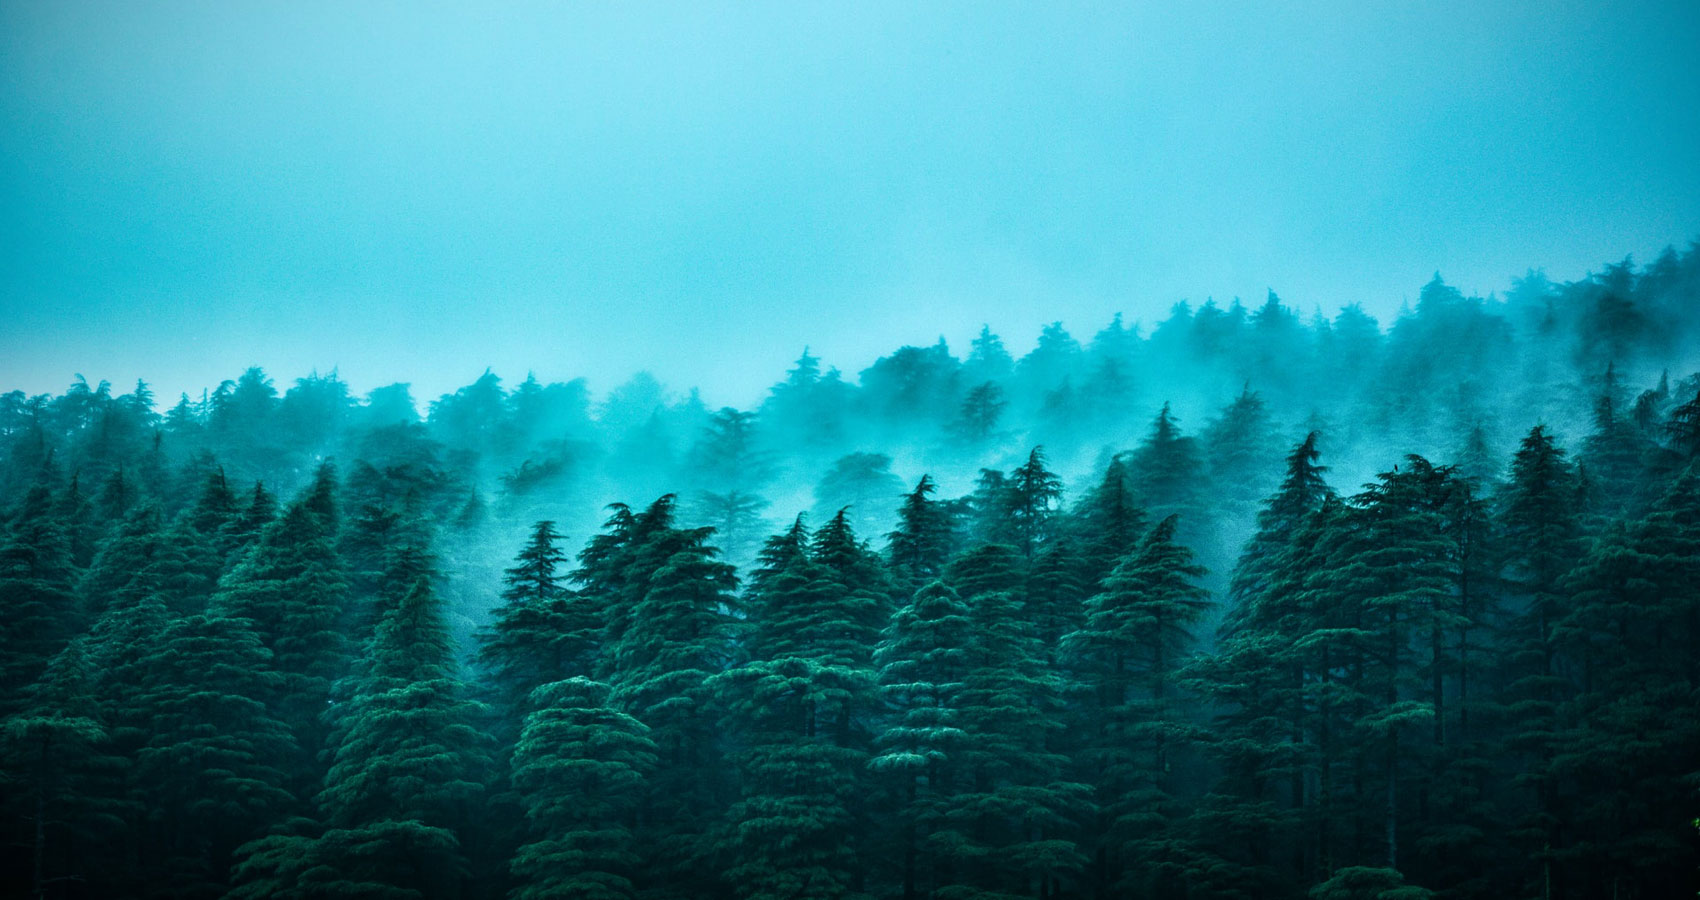 Blue Pines, a poem written by Scott Thomas Outlar at Spillwords.com